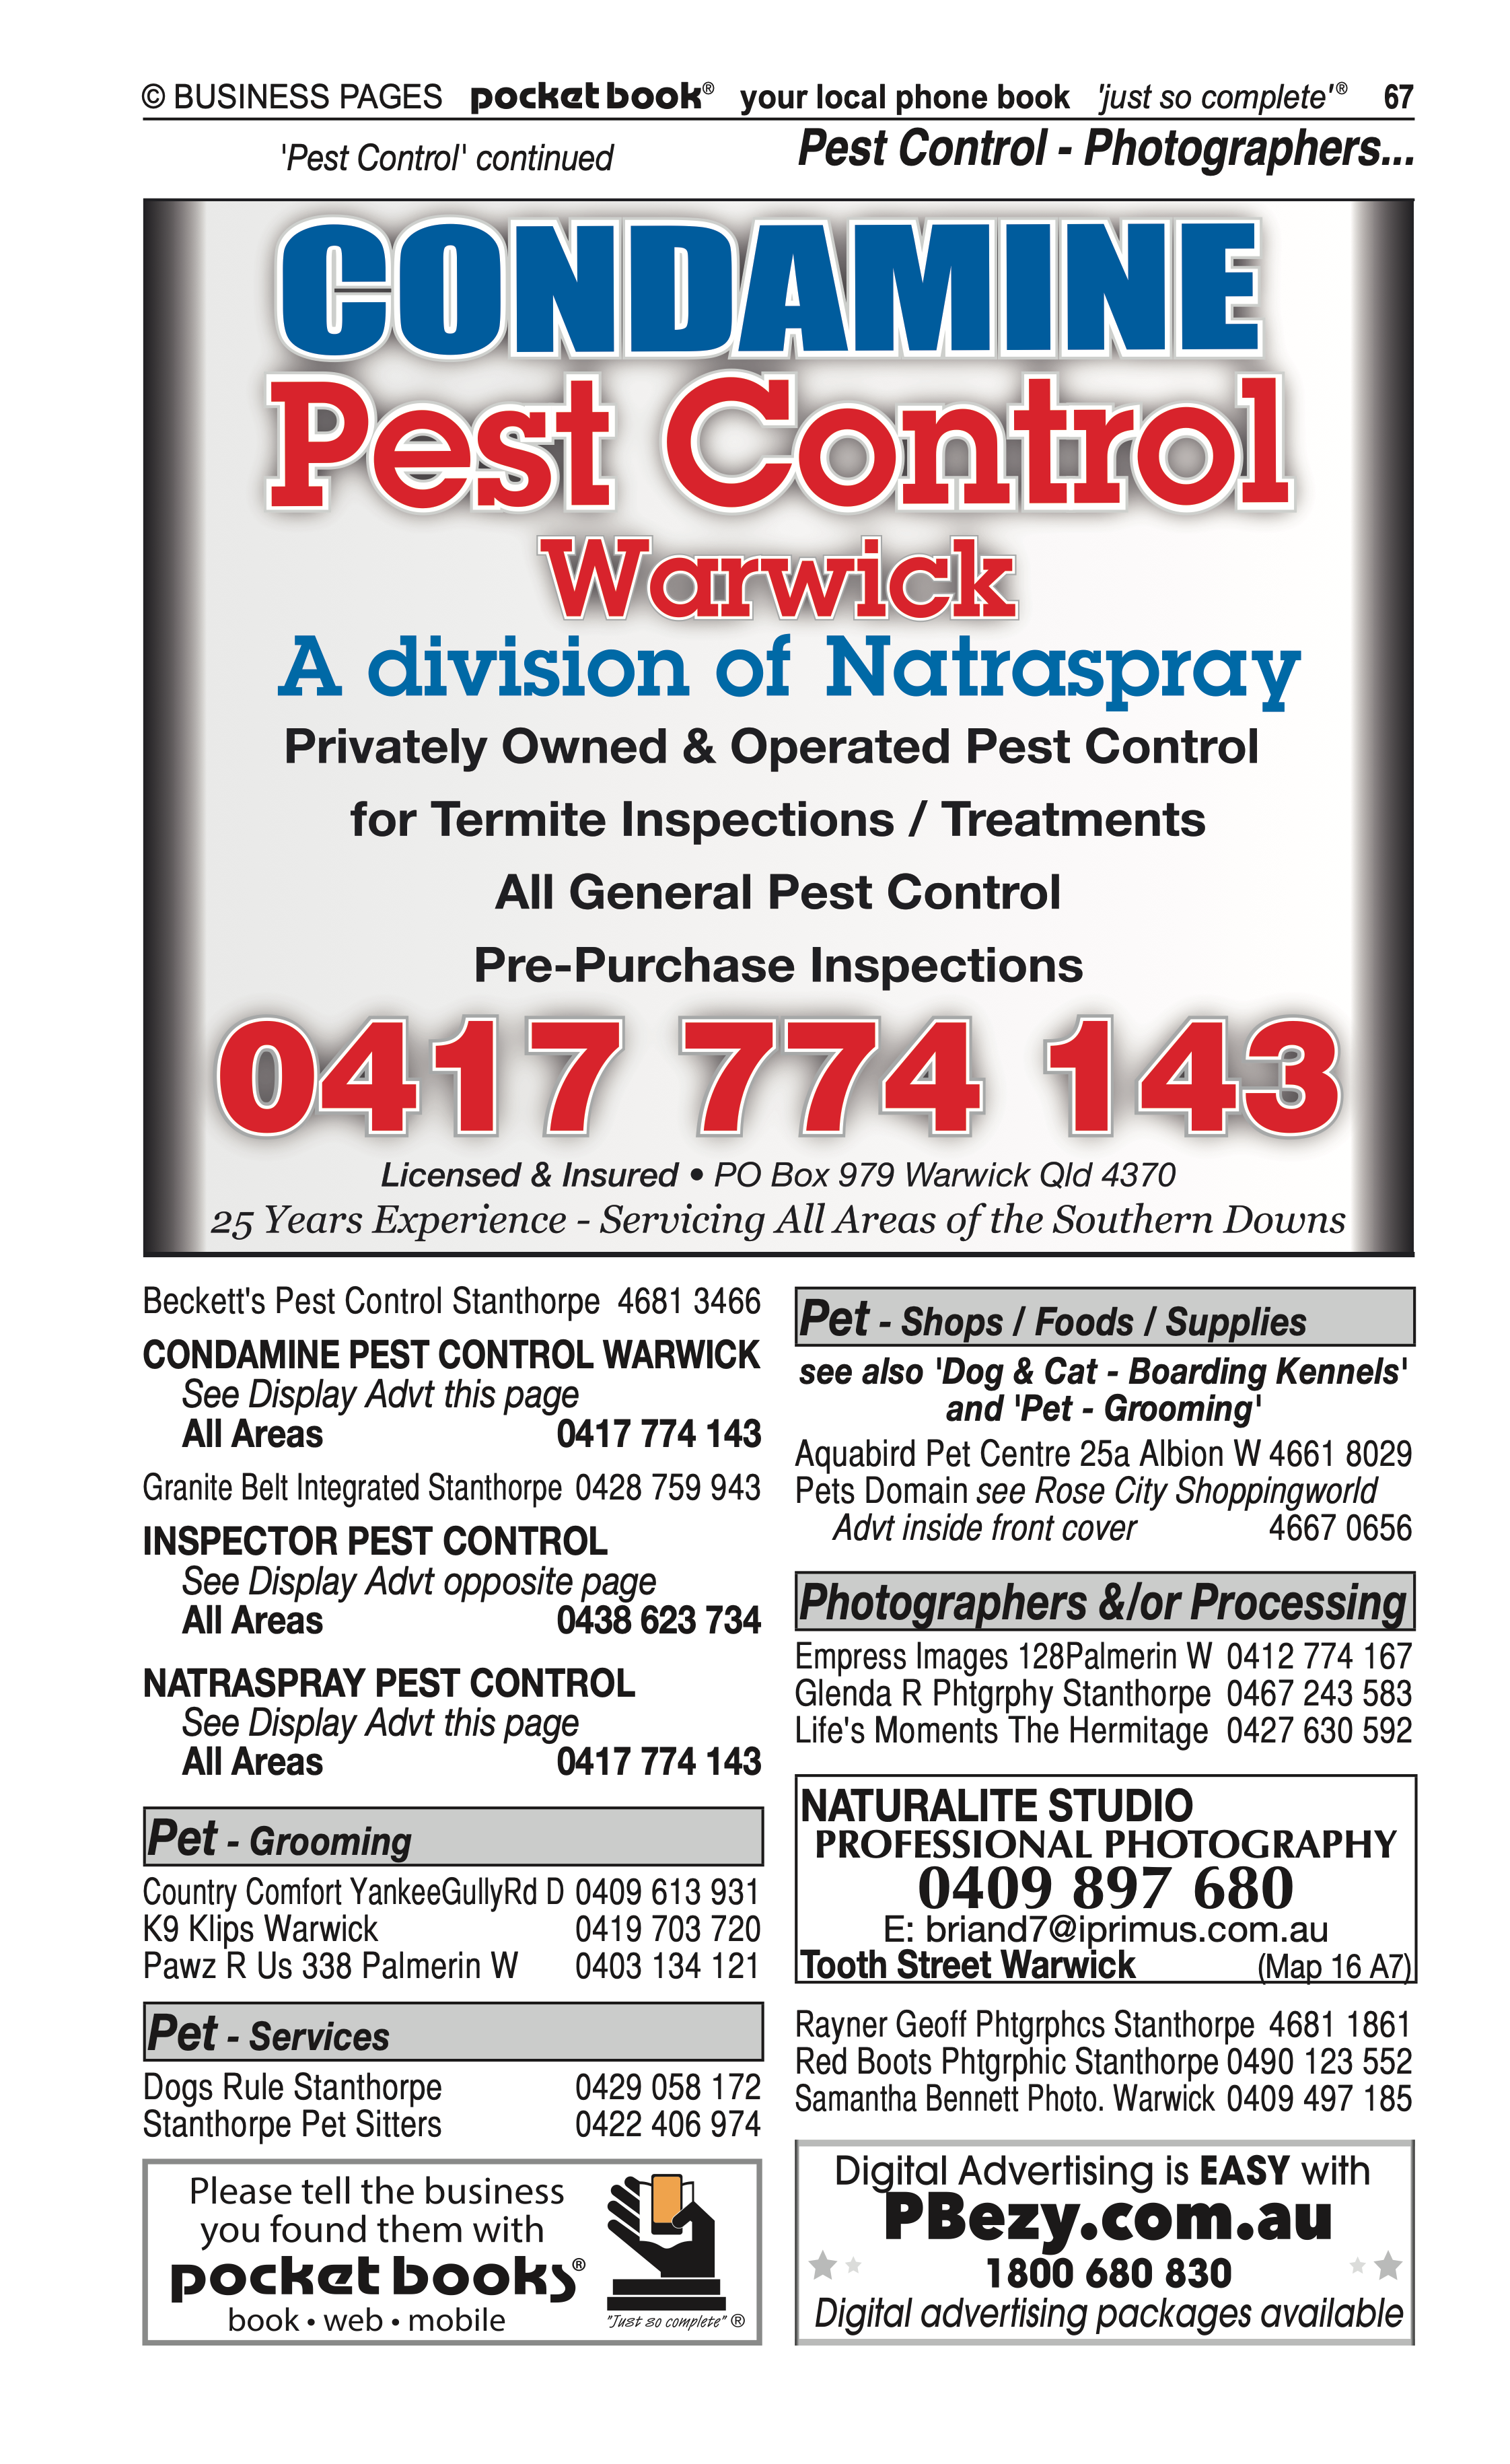 ABC Lawn & Garden Care | Lawn Mowing in Rosenthal Heights | PBezy Pocket Books local directories - page 67